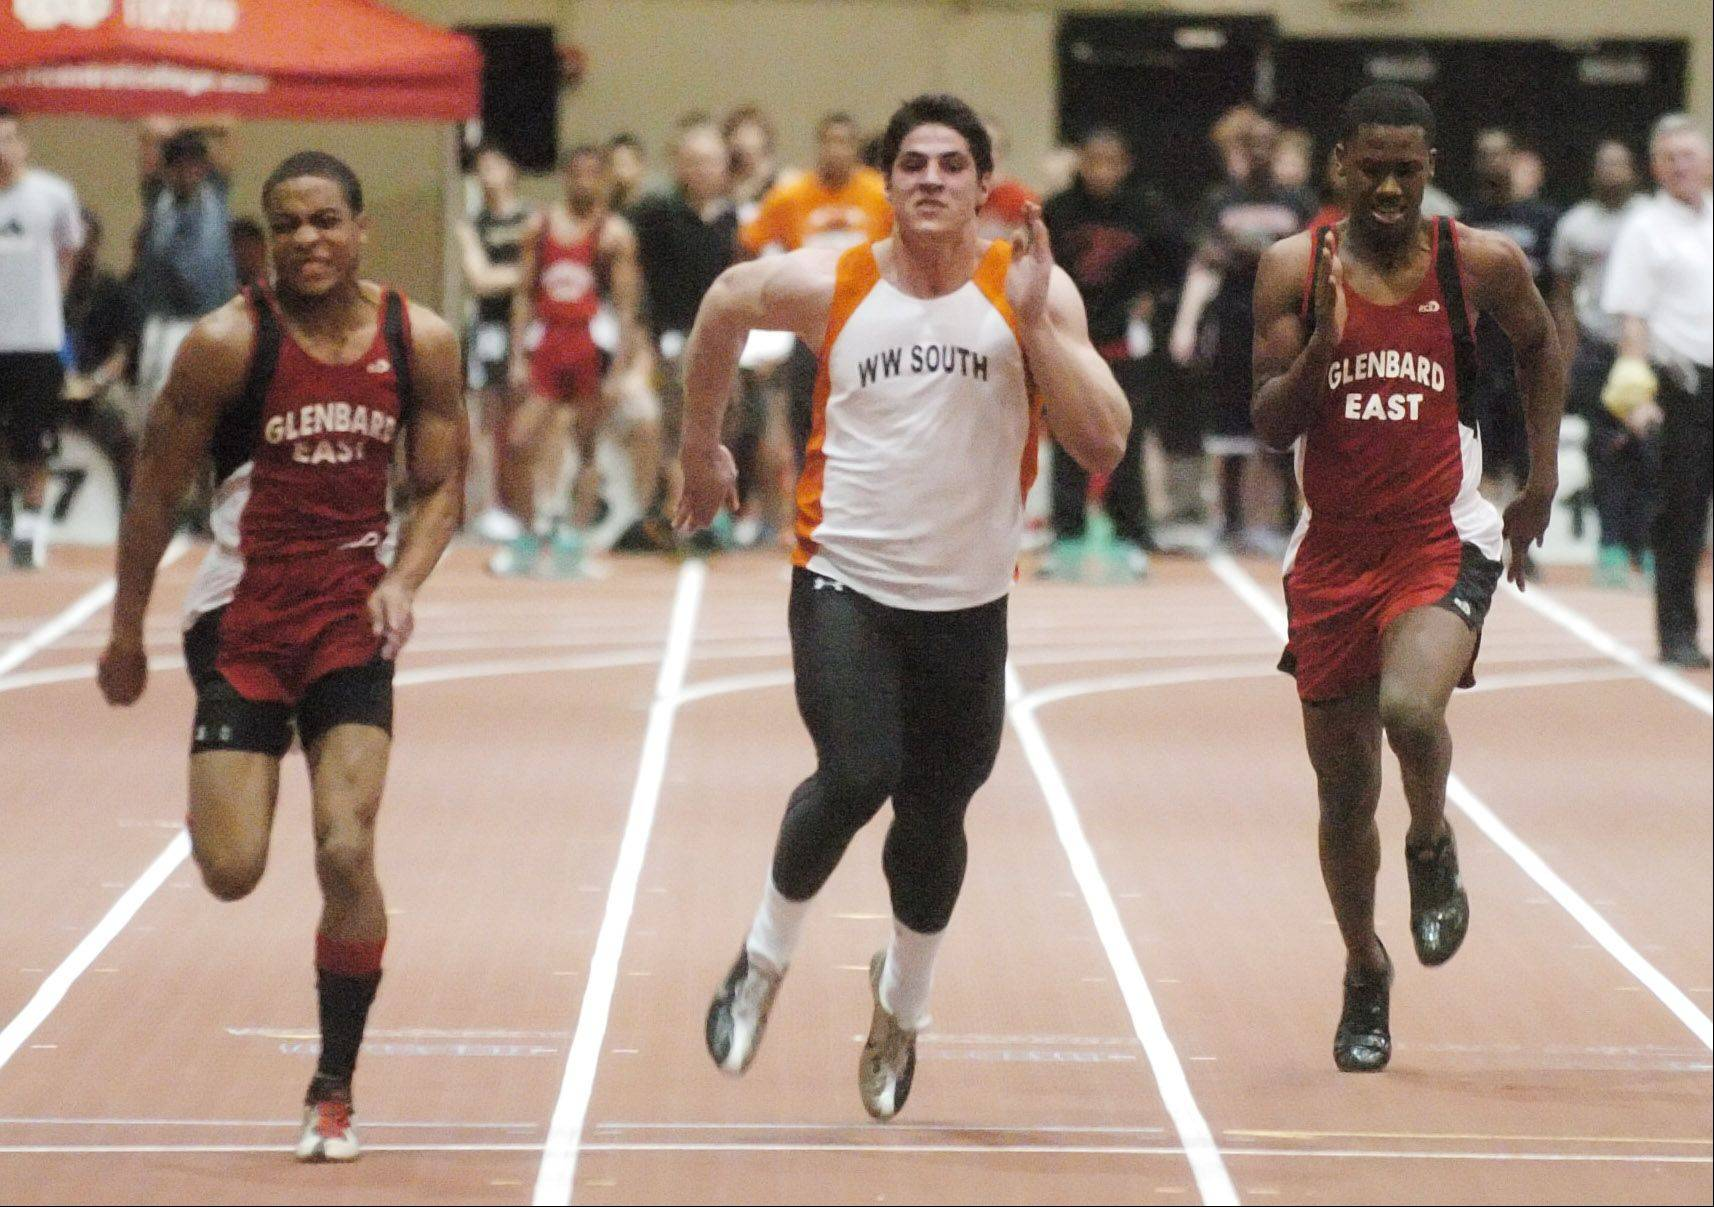 Markel Brackett,left, of Glenbard East, Dan Vitale of Wheaton Warrenville south, and Antwon James of Glenbard East take part in the 55 meter dash during the DuPage Valley Conference indoor boys track meet in Naperville Friday.